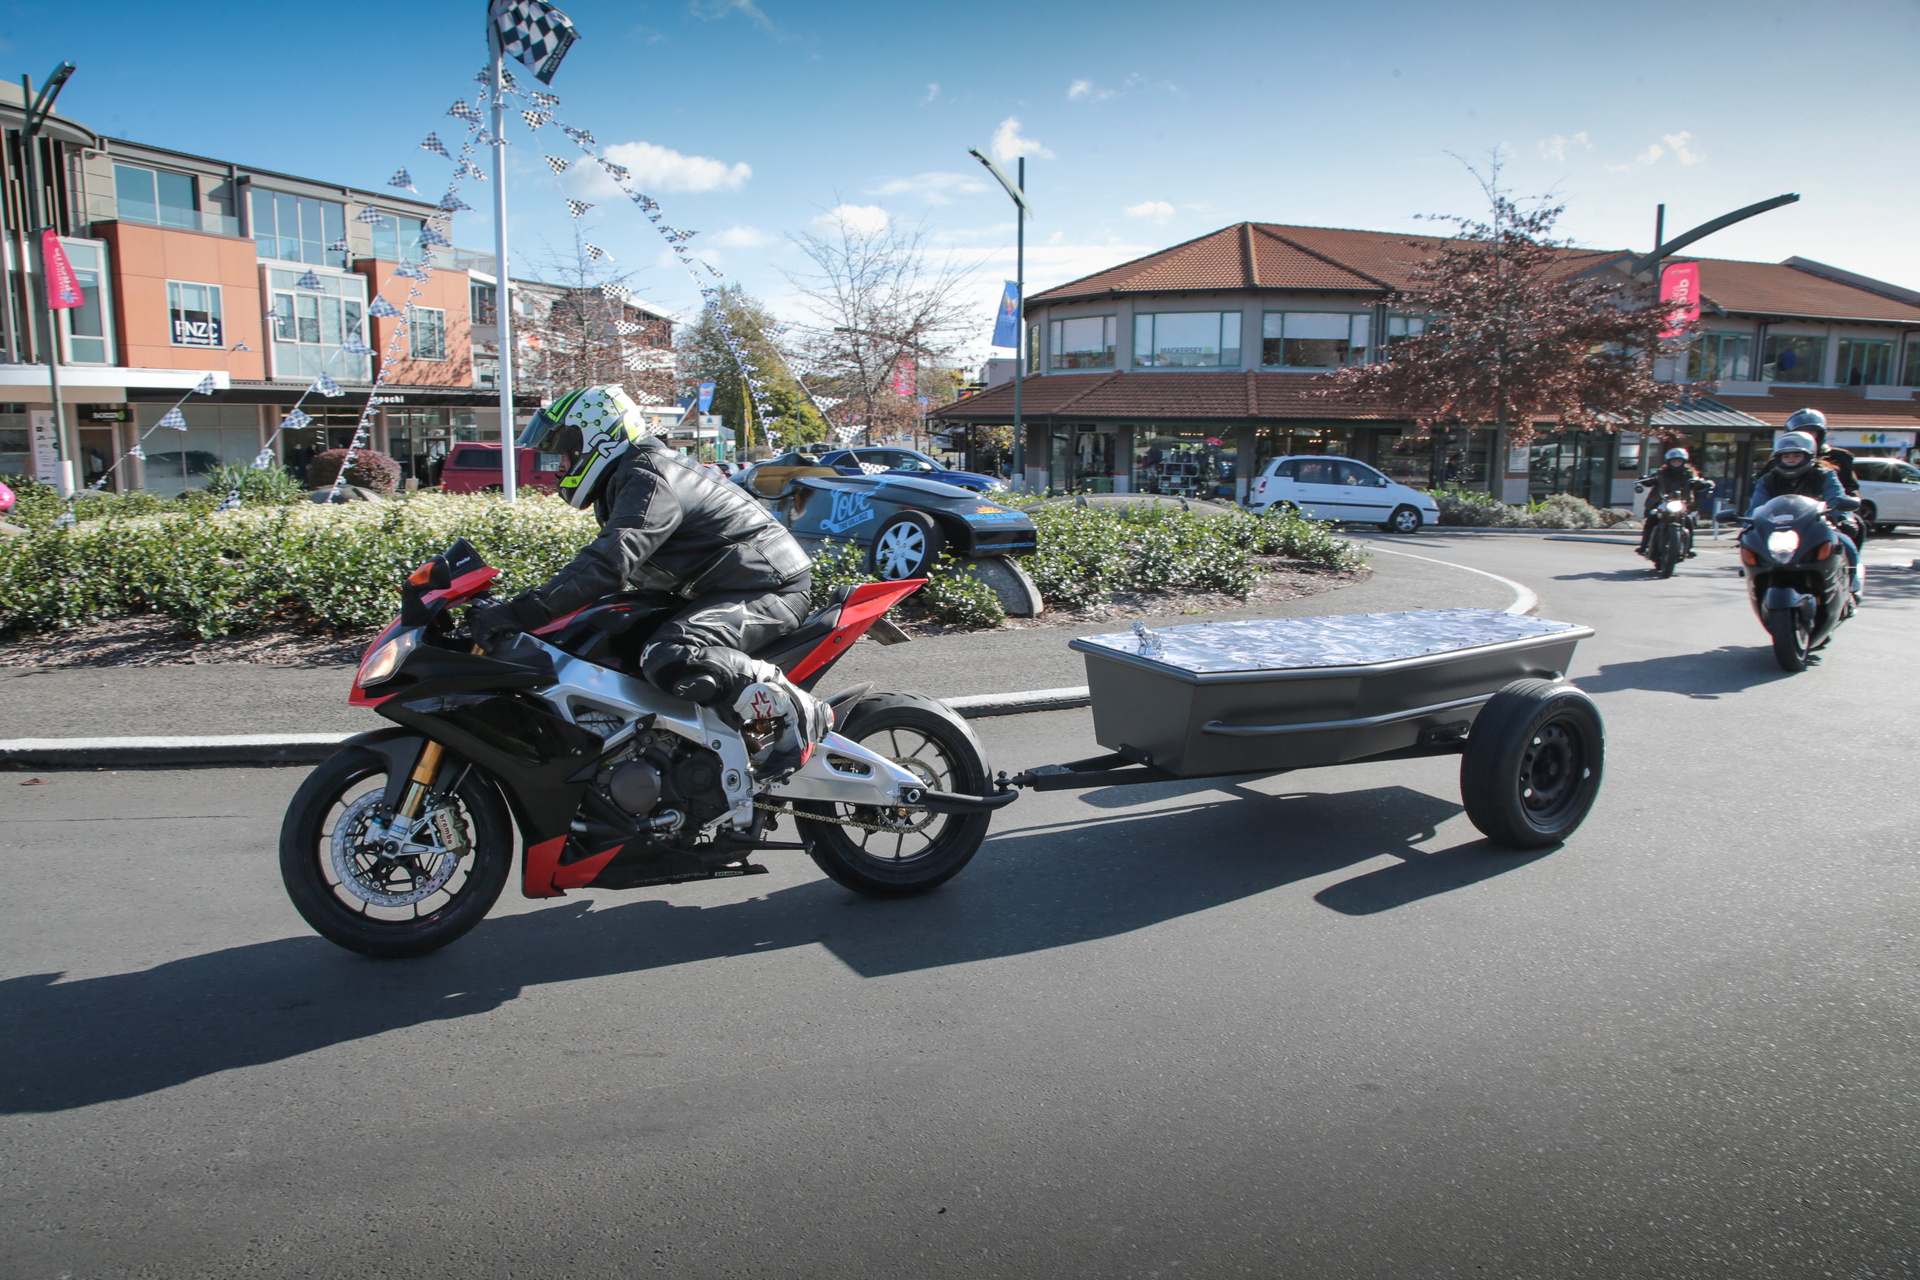 The coffin on the back of the motorbike: Hawke's Bay rider's final journey